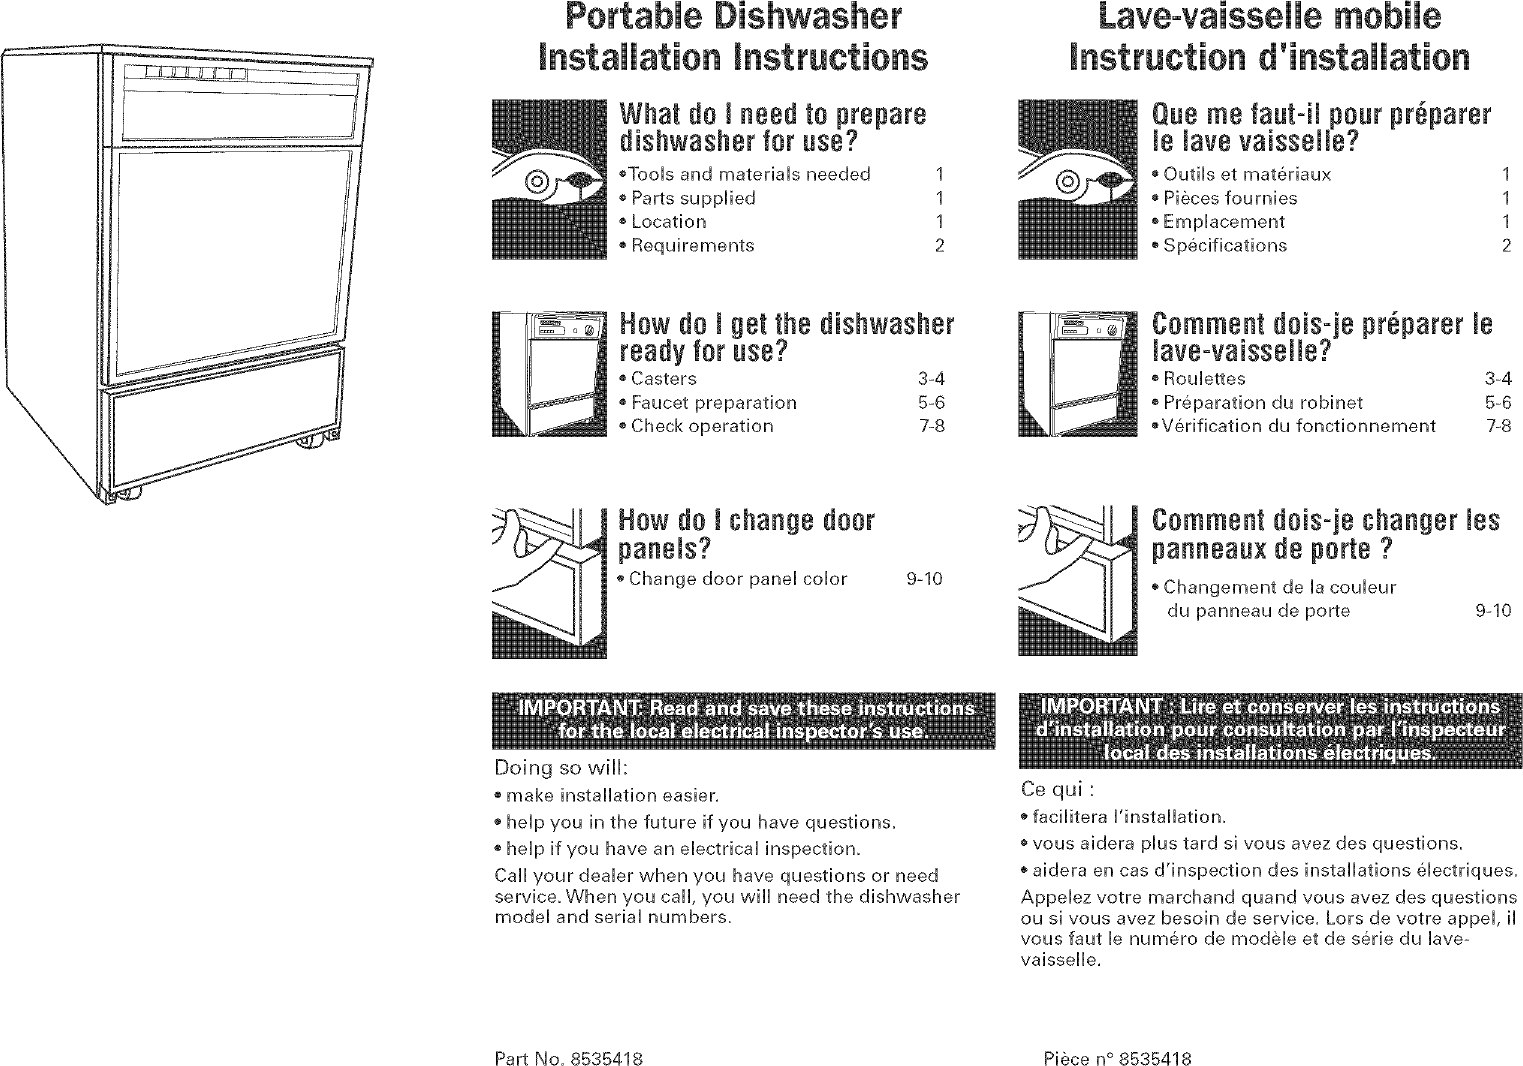 whirlpool dp840swsx0 user manual dishwasher manuals and guides l0411315 rh usermanual wiki whirlpool dishwasher adp6000wh service manual whirlpool dishwasher service manual pdf